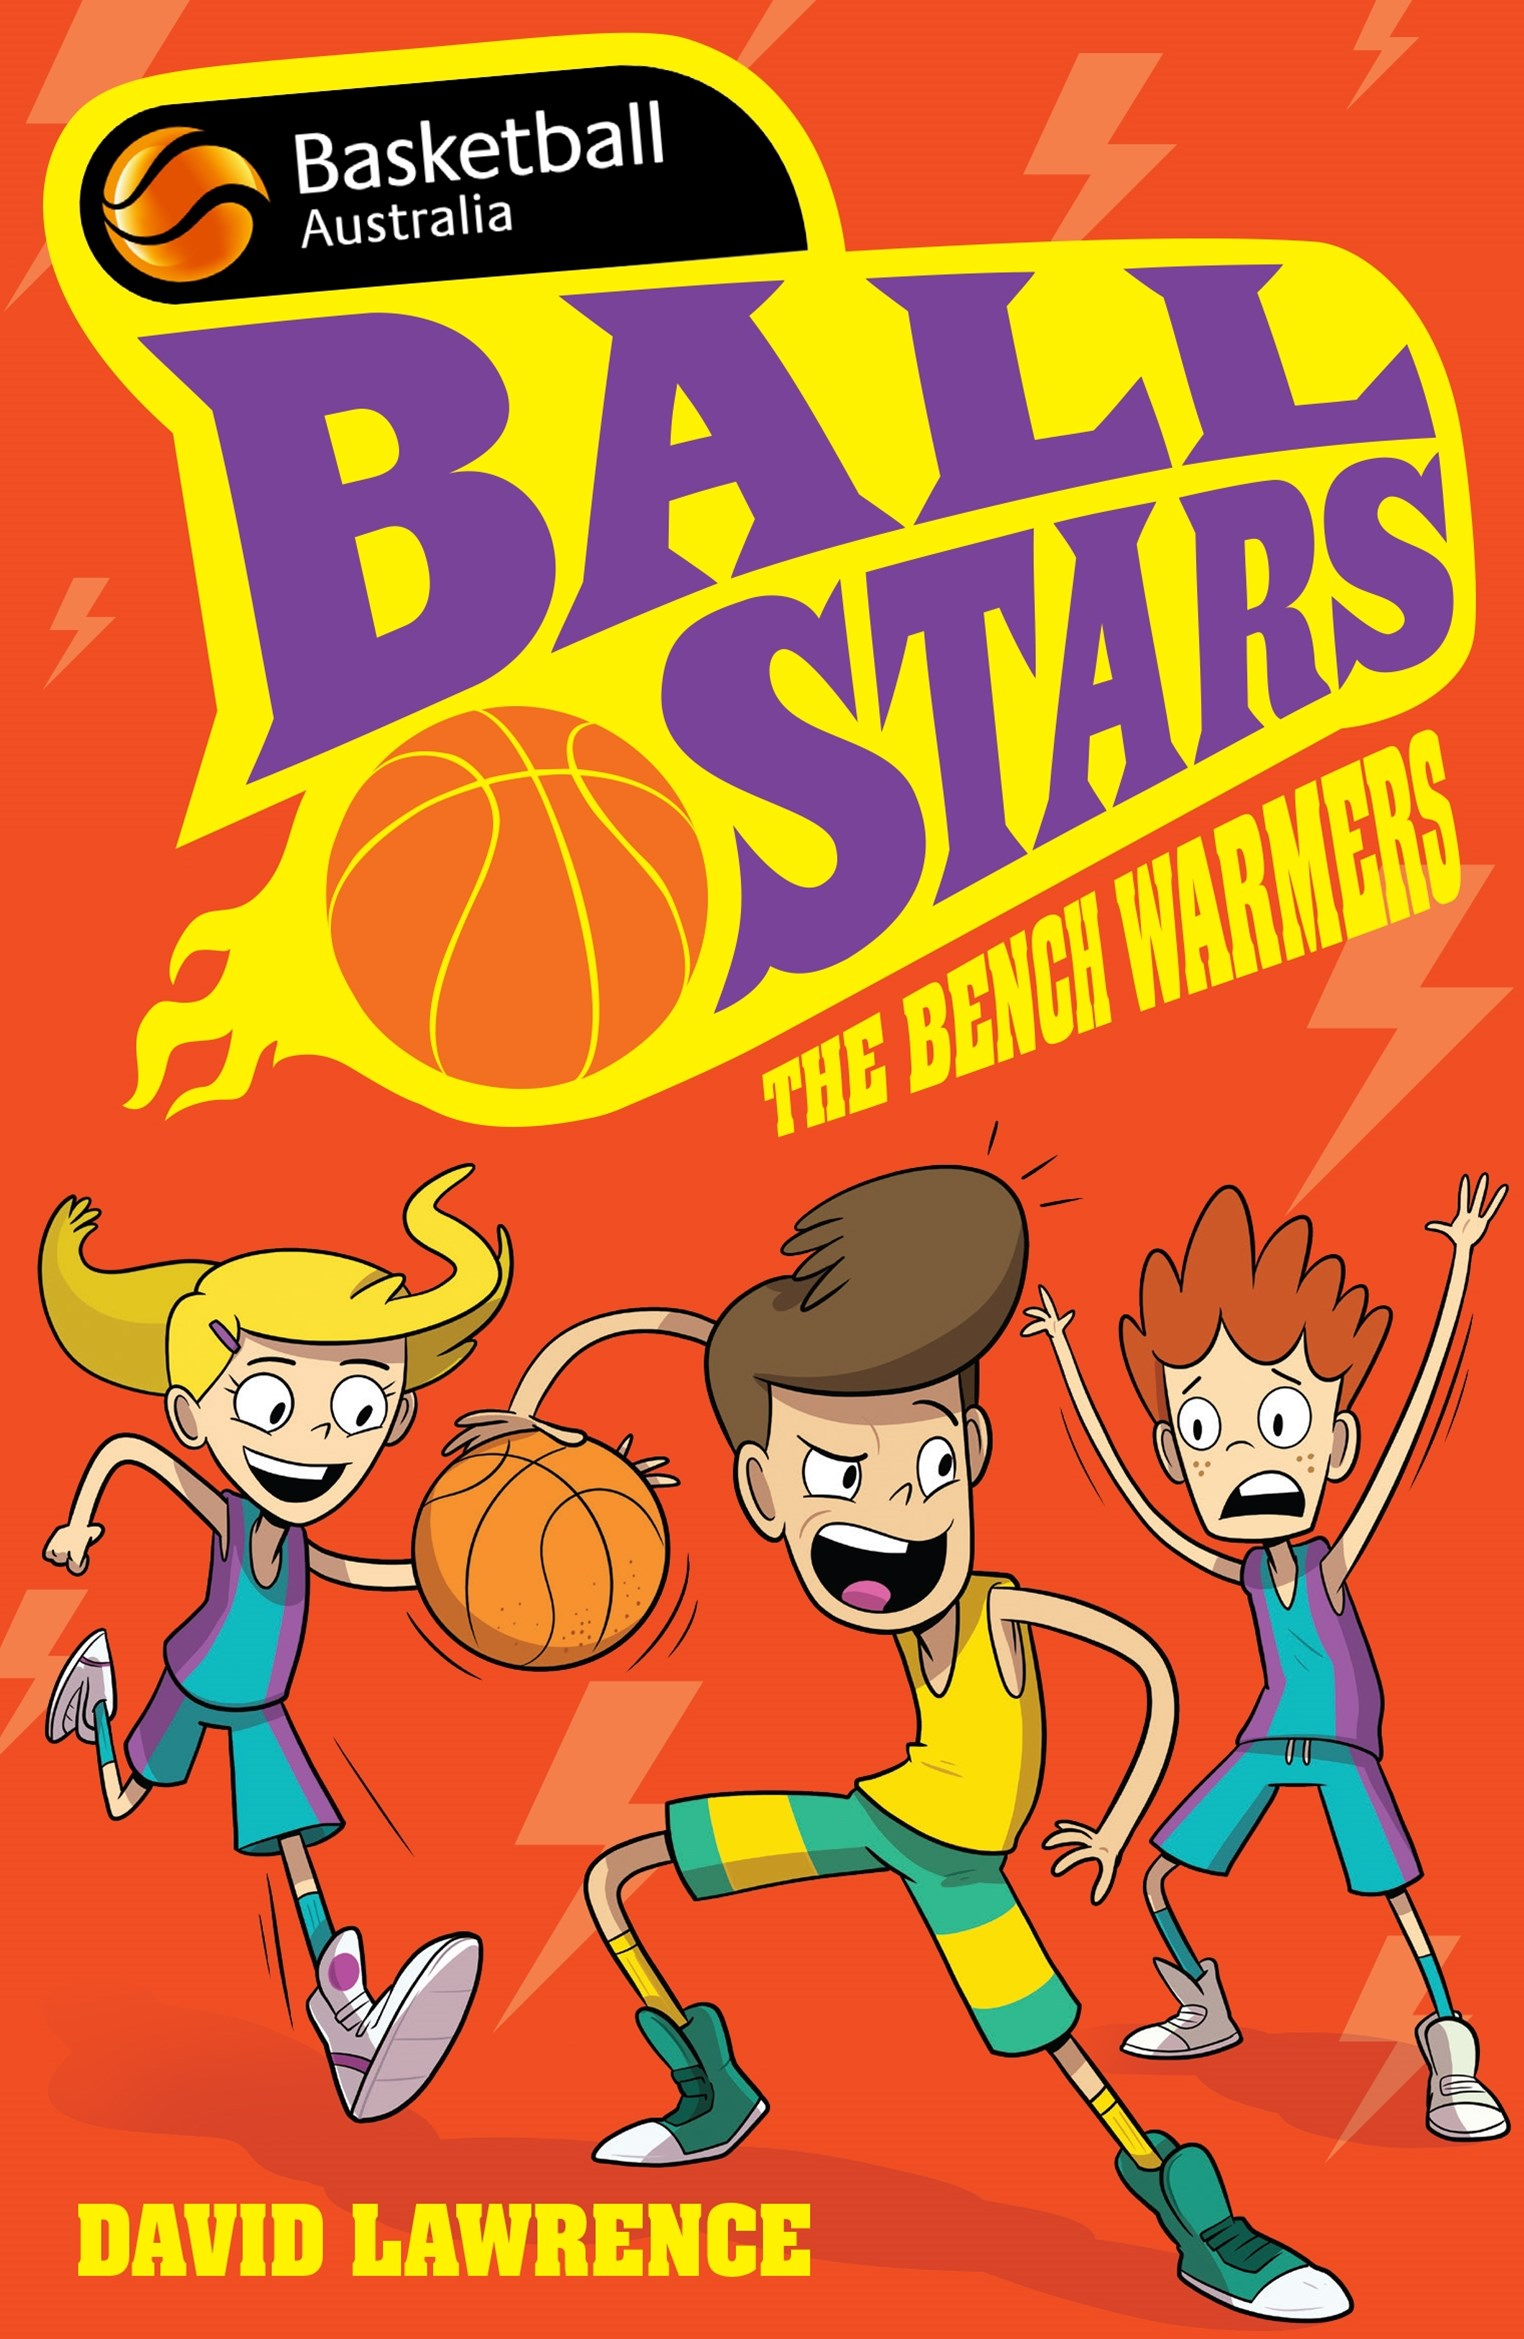 The Bench Warmers (Ball Stars, Book 1)